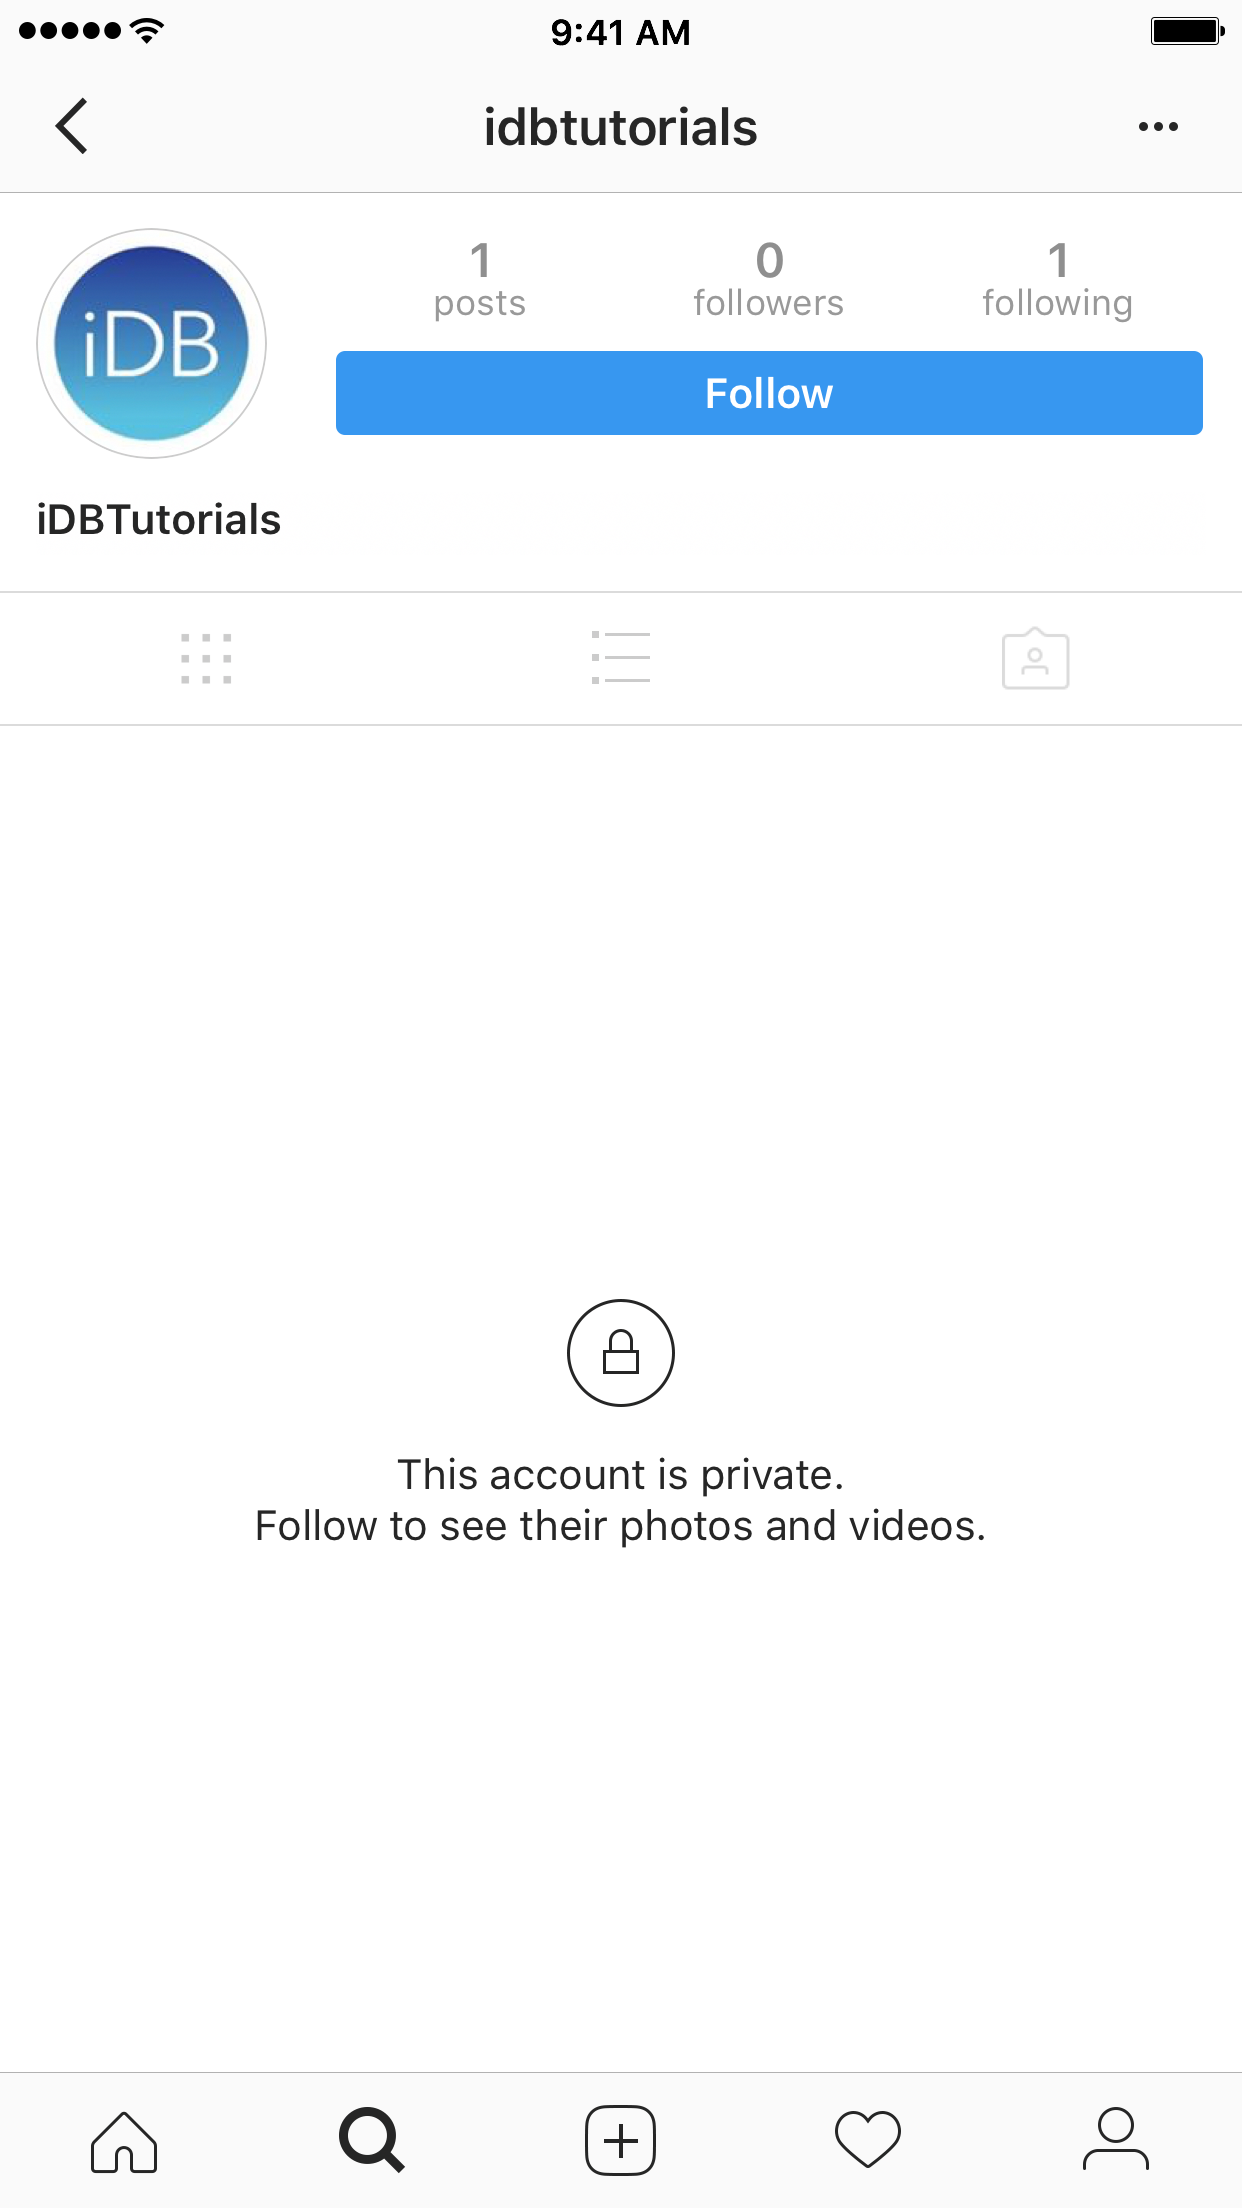 This Instagram account is private